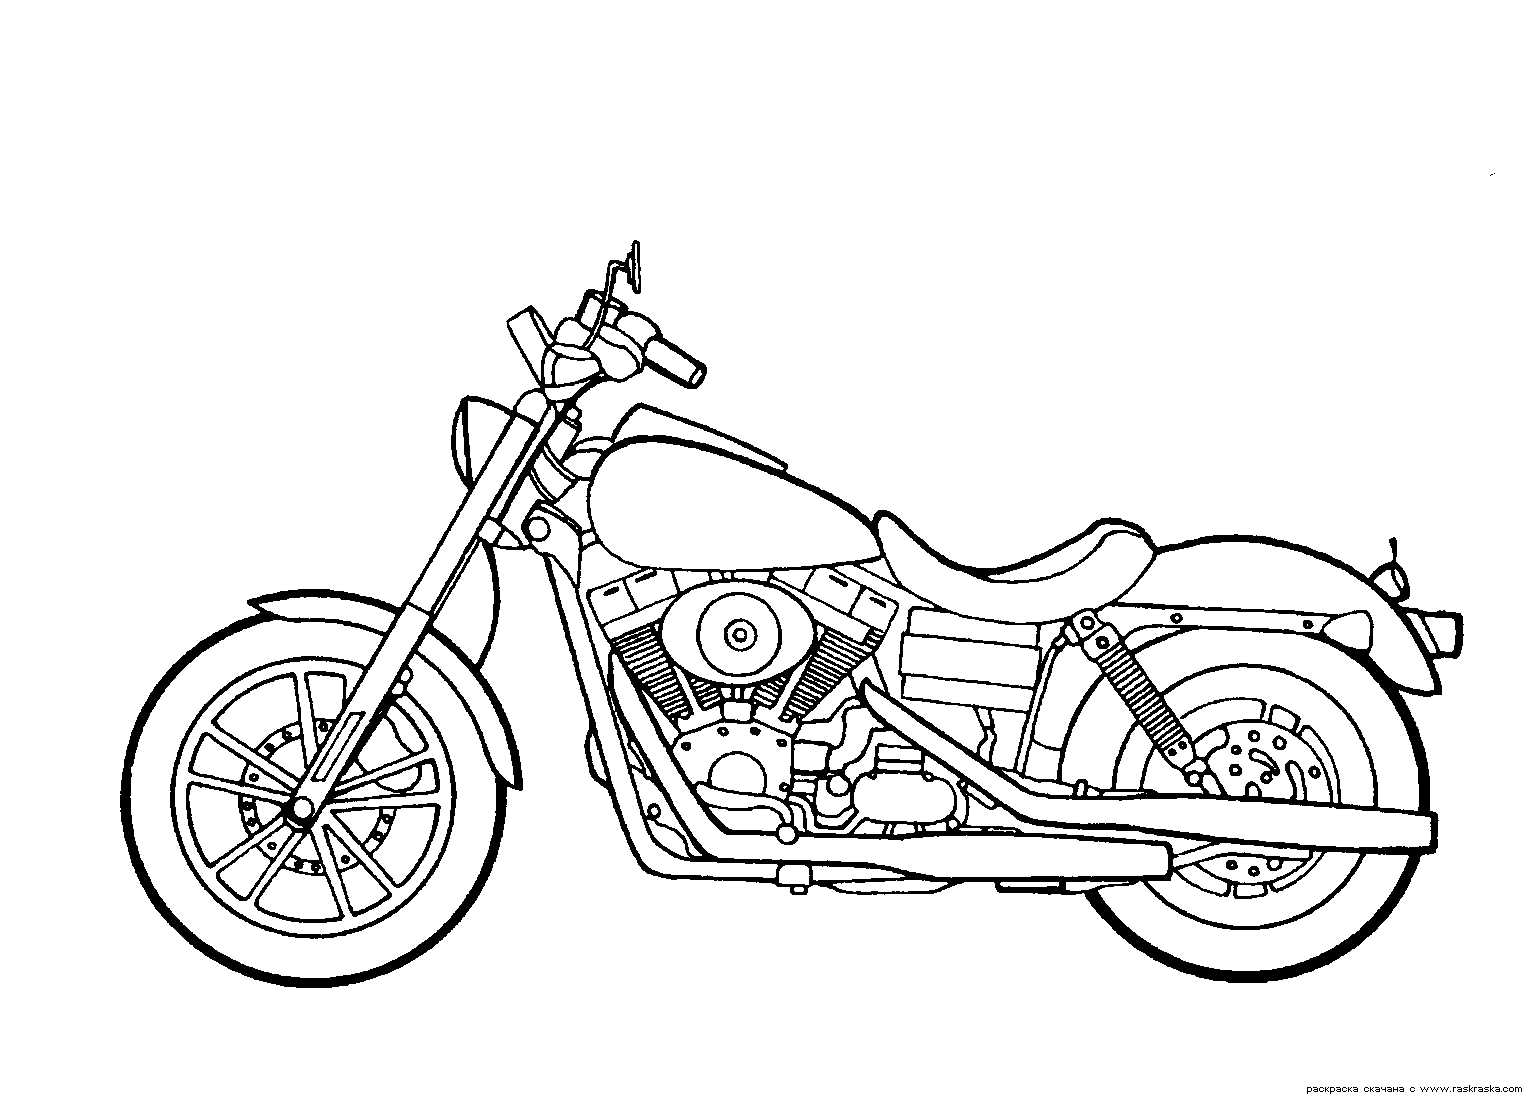 harley auto electrical wiring diagram Toyota V12 harley davidson logo coloring pages